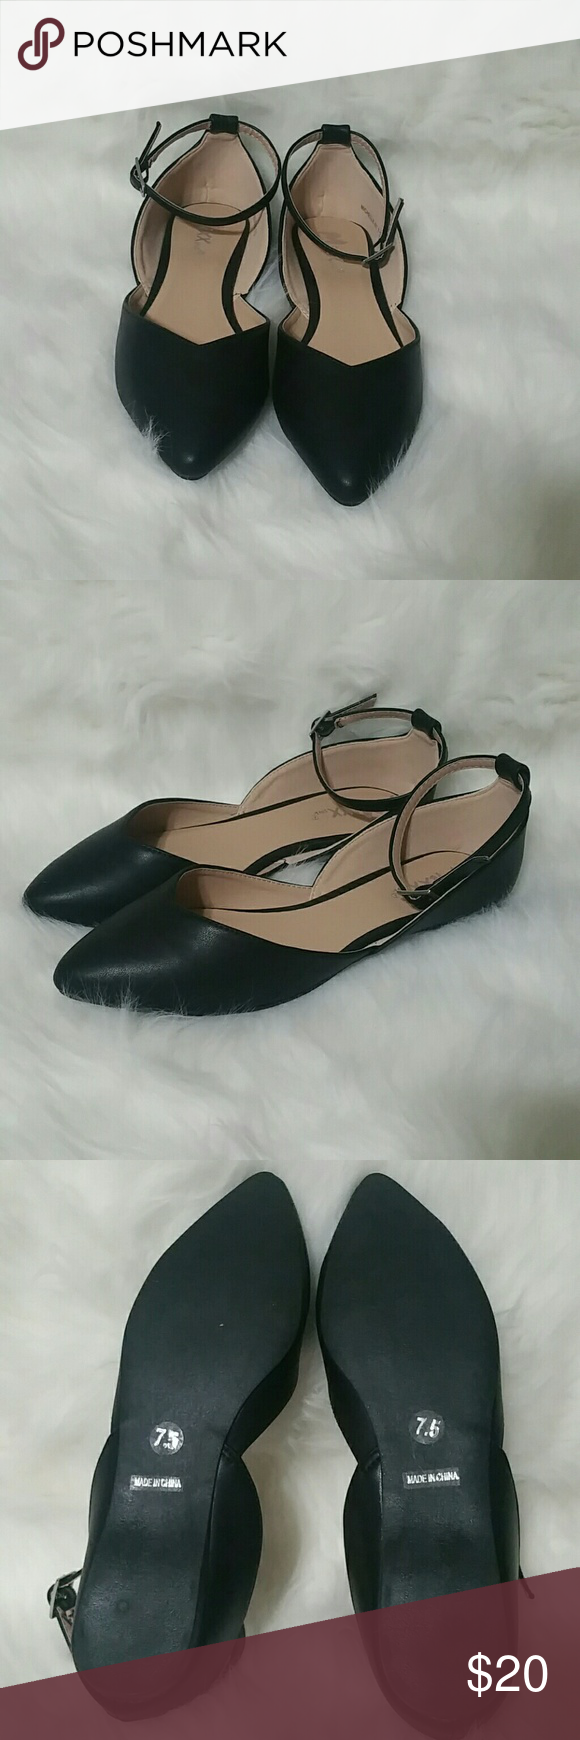 """Black Mixx Shuz D'orsay flats with ankle straps Black Mixx Shuz D'orsay flats with ankle straps. Faux leather. New, no tags. Top of toe to back of heel measures approx 10"""" and widest part of the foot measures approx 3"""". Mixx Shuz Shoes Flats & Loafers"""